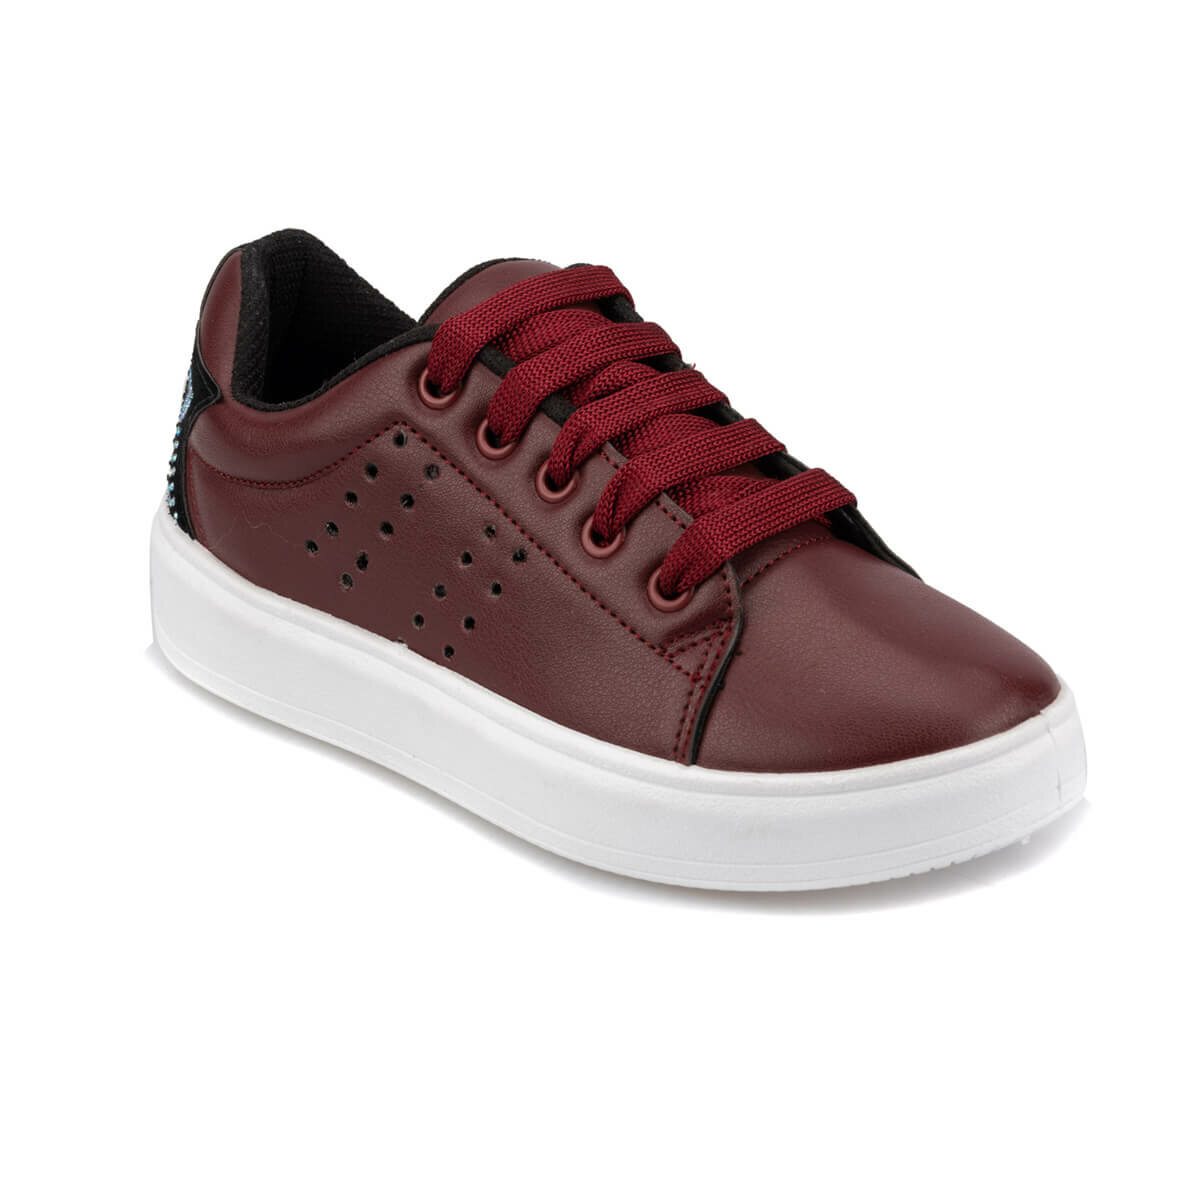 FLO 92.511913.F Burgundy Female Child Sneaker Shoes Polaris